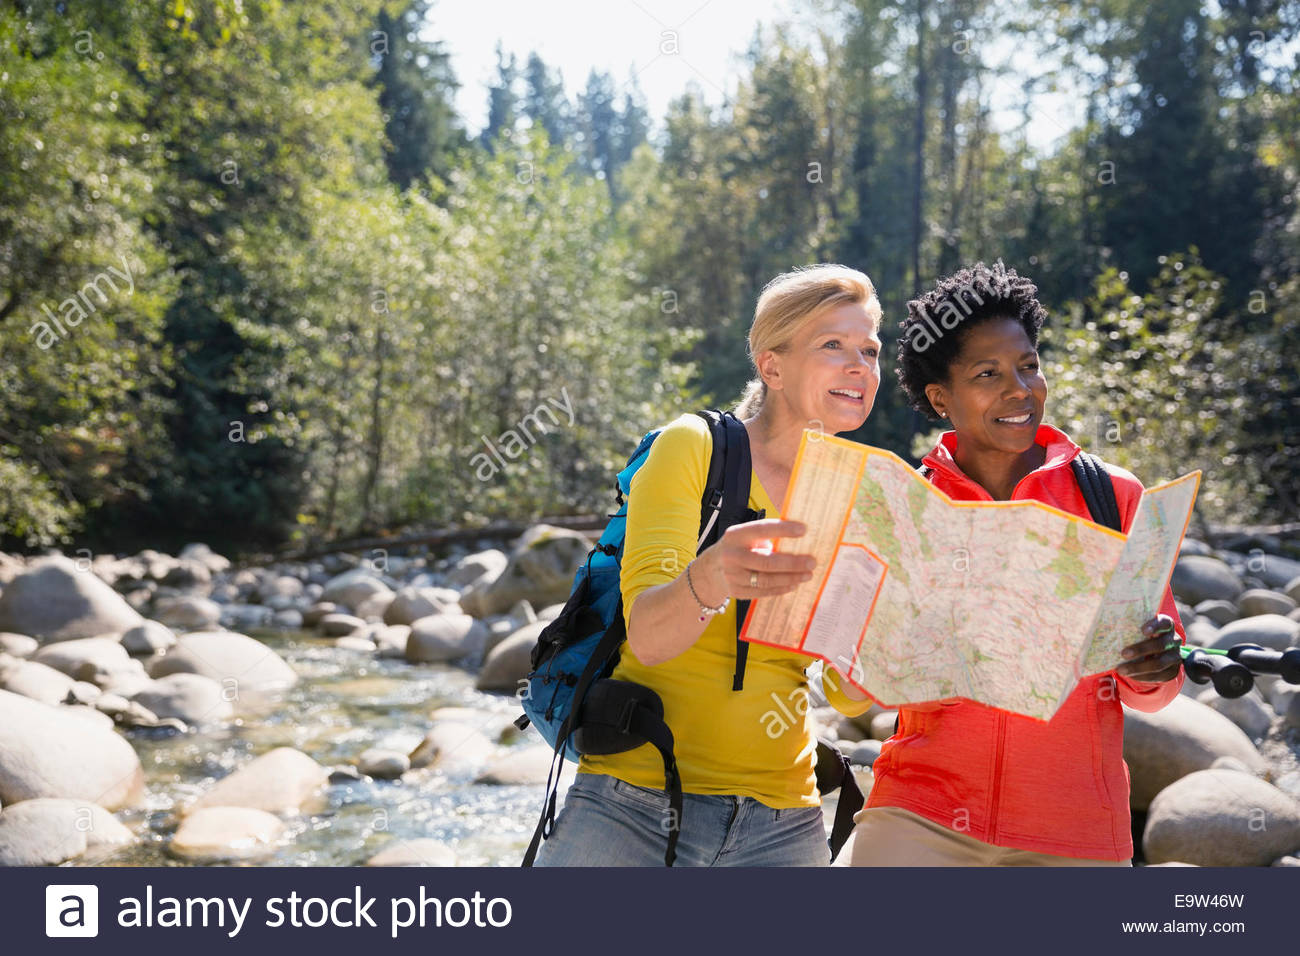 Women looking at trail map in sunny woods - Stock Image